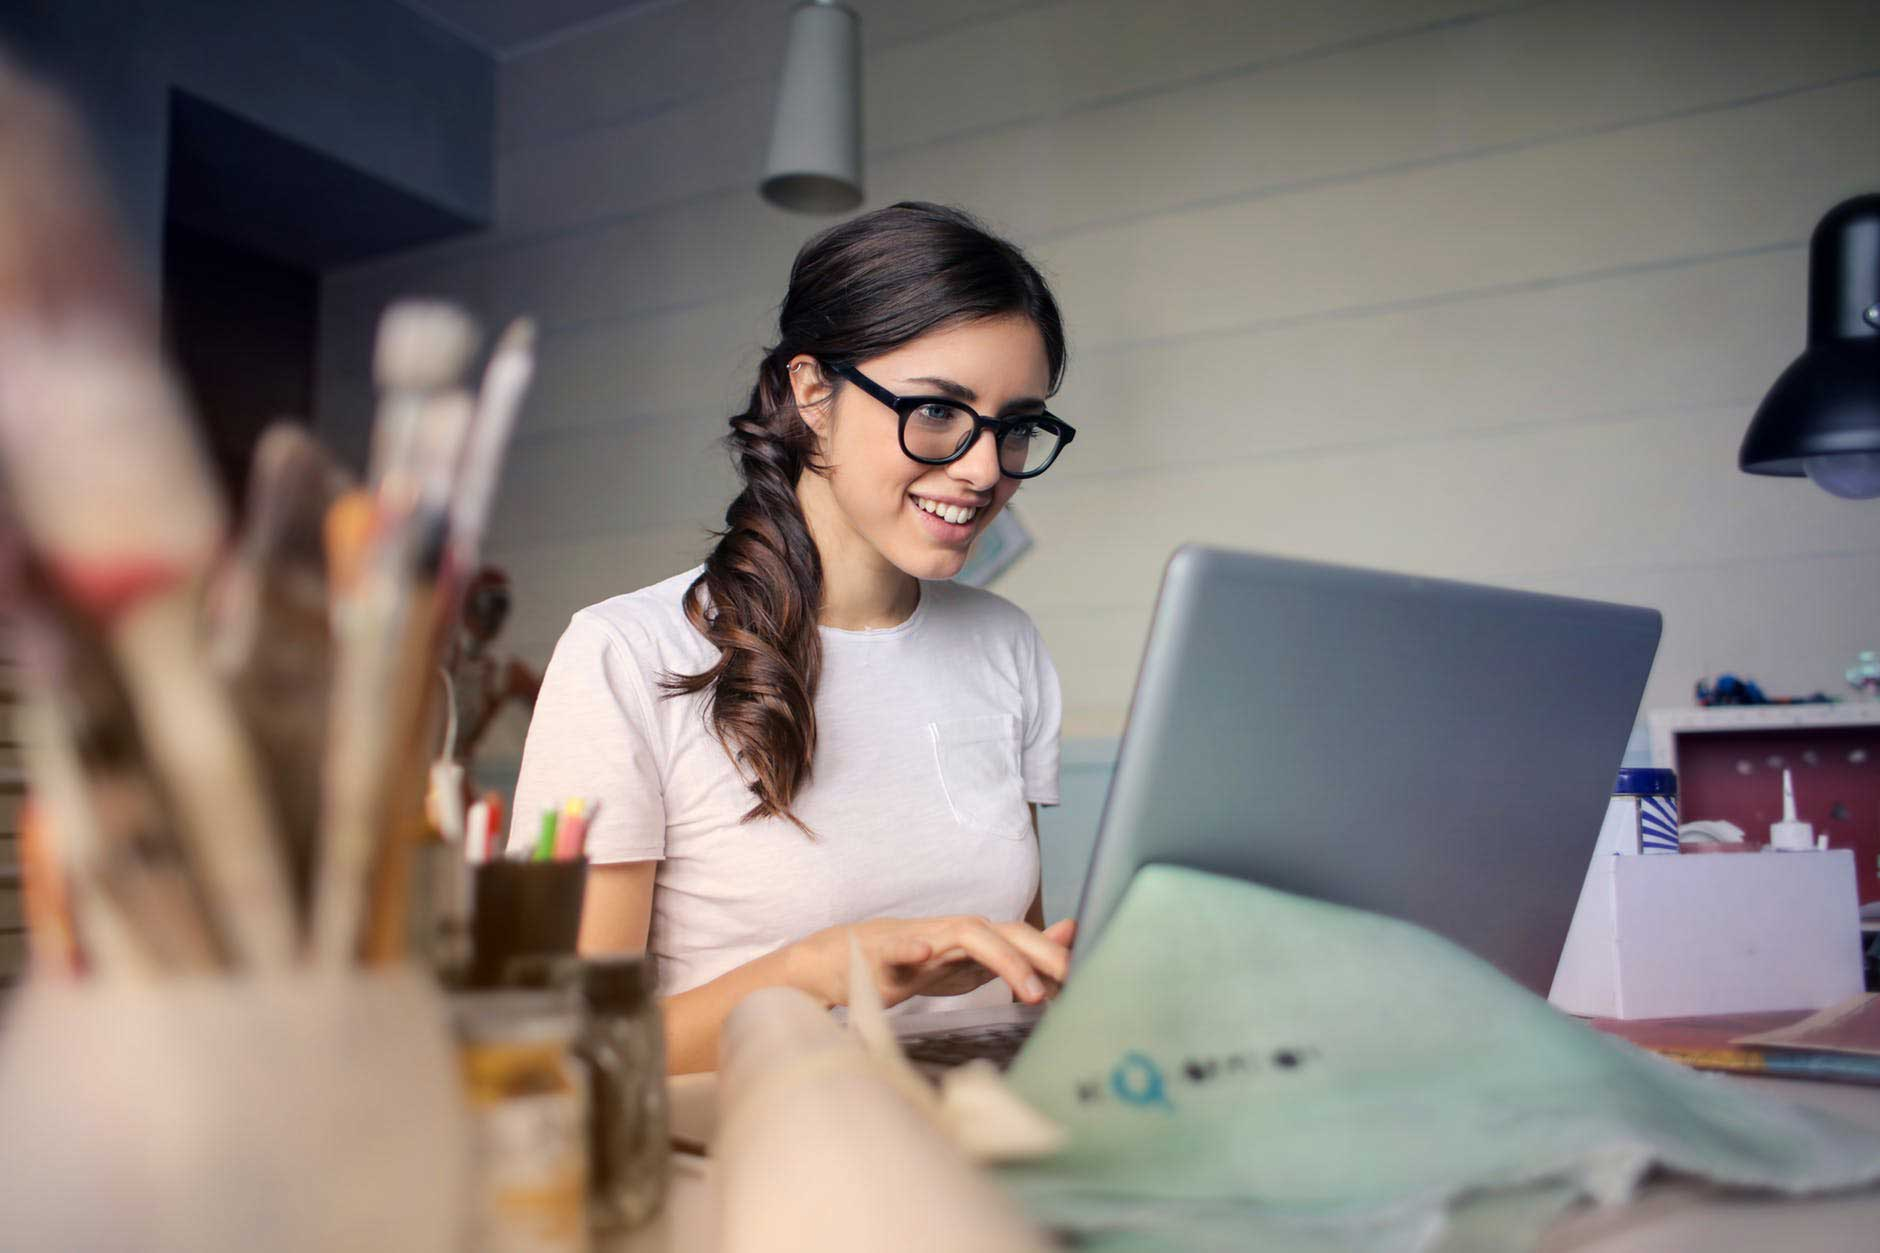 Woman working on laptop looking happy becuase of positive work-life balance in Leicester